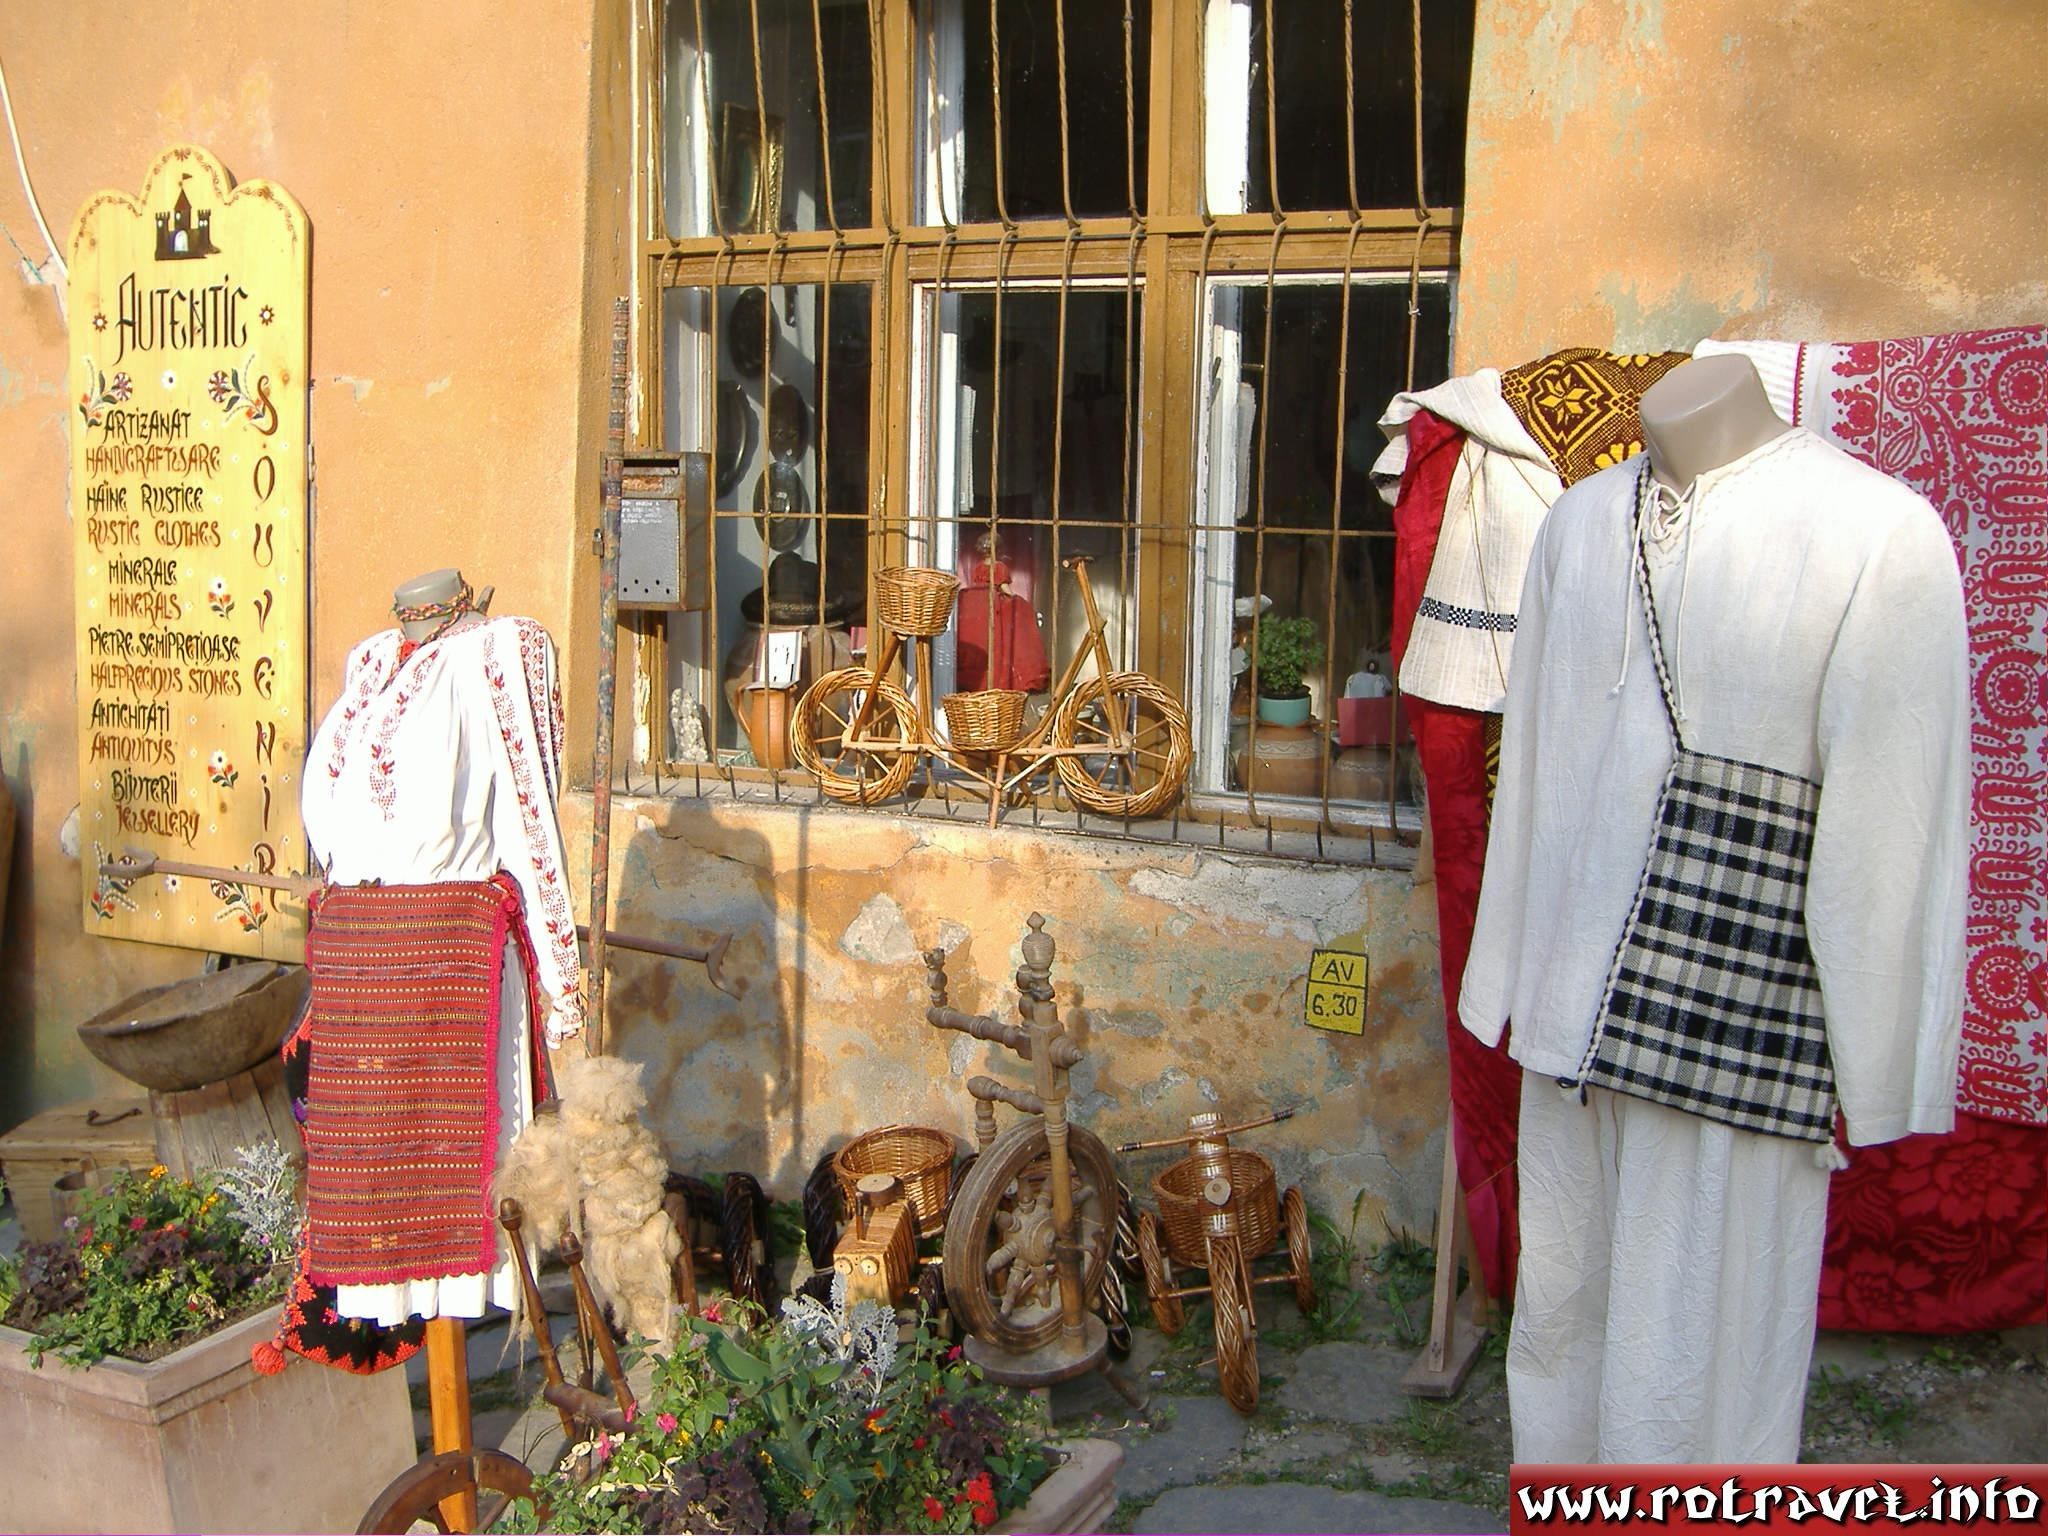 A good shop with folkloric souvenirs from Transylvania.